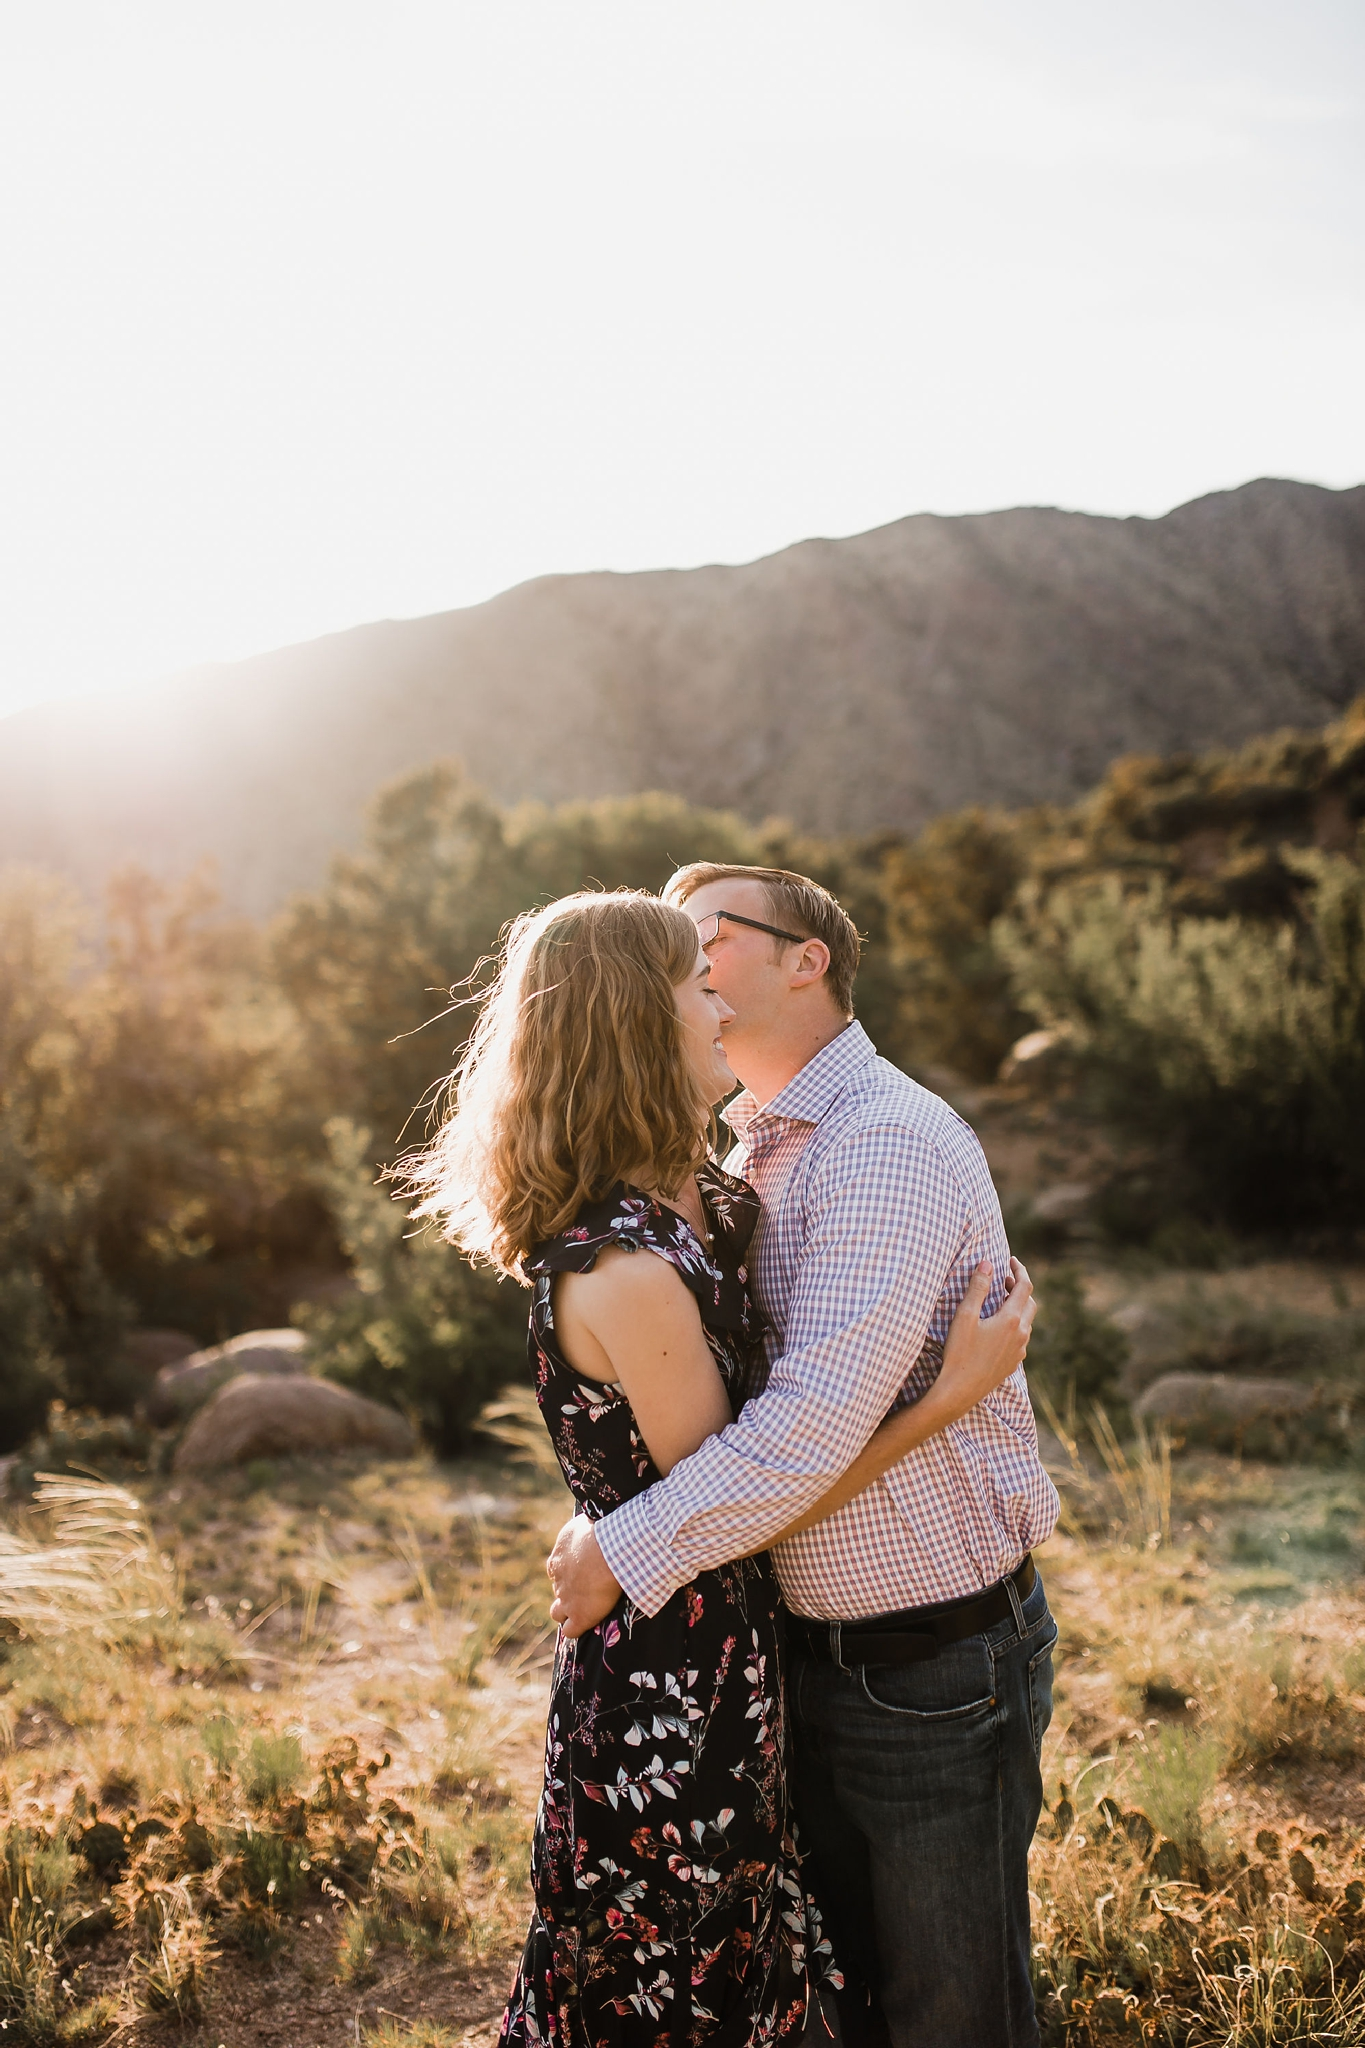 Alicia+lucia+photography+-+albuquerque+wedding+photographer+-+santa+fe+wedding+photography+-+new+mexico+wedding+photographer+-+new+mexico+wedding+-+new+mexico+engagement+-+mountain+engagement+-+casa+perea+wedding_0005.jpg